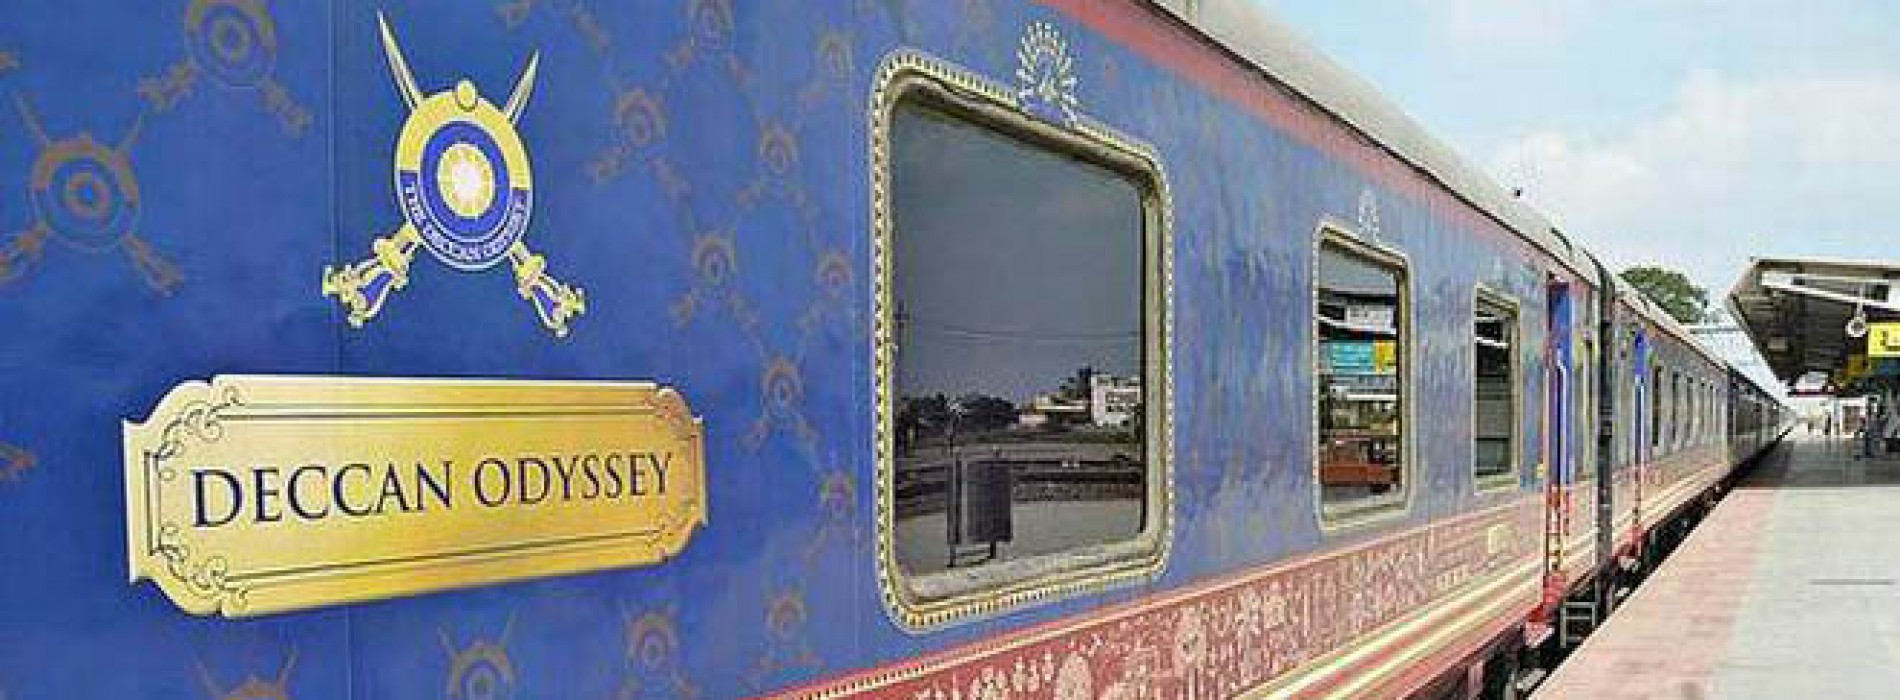 Deccan Odyssey named Asia's leading luxury train for 5th time in row